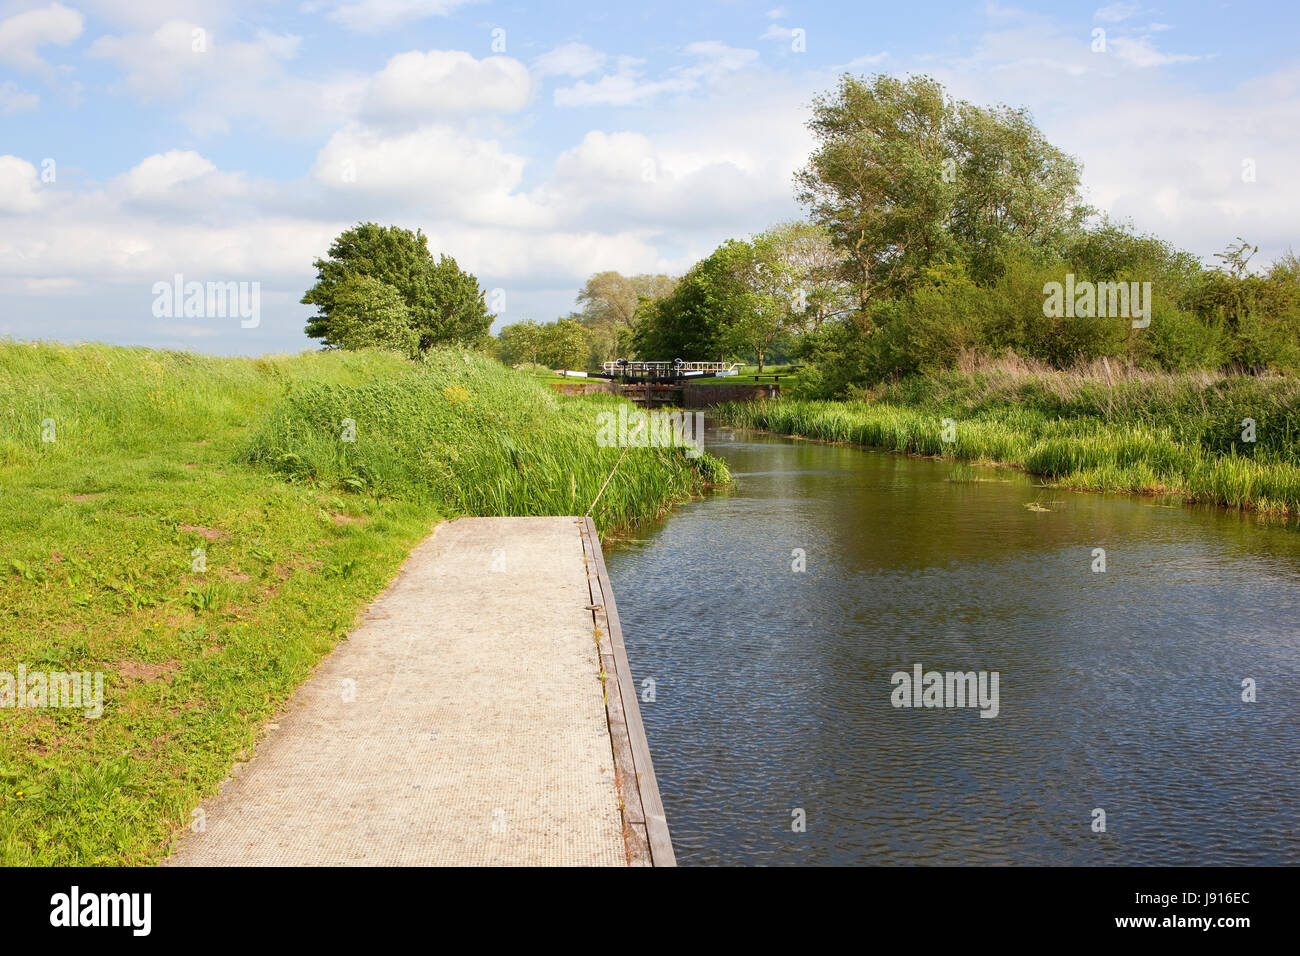 a yorkshire canal and lock with towpath woods and wildflowers and a jetty under a blue cloudy sky in summer - Stock Image